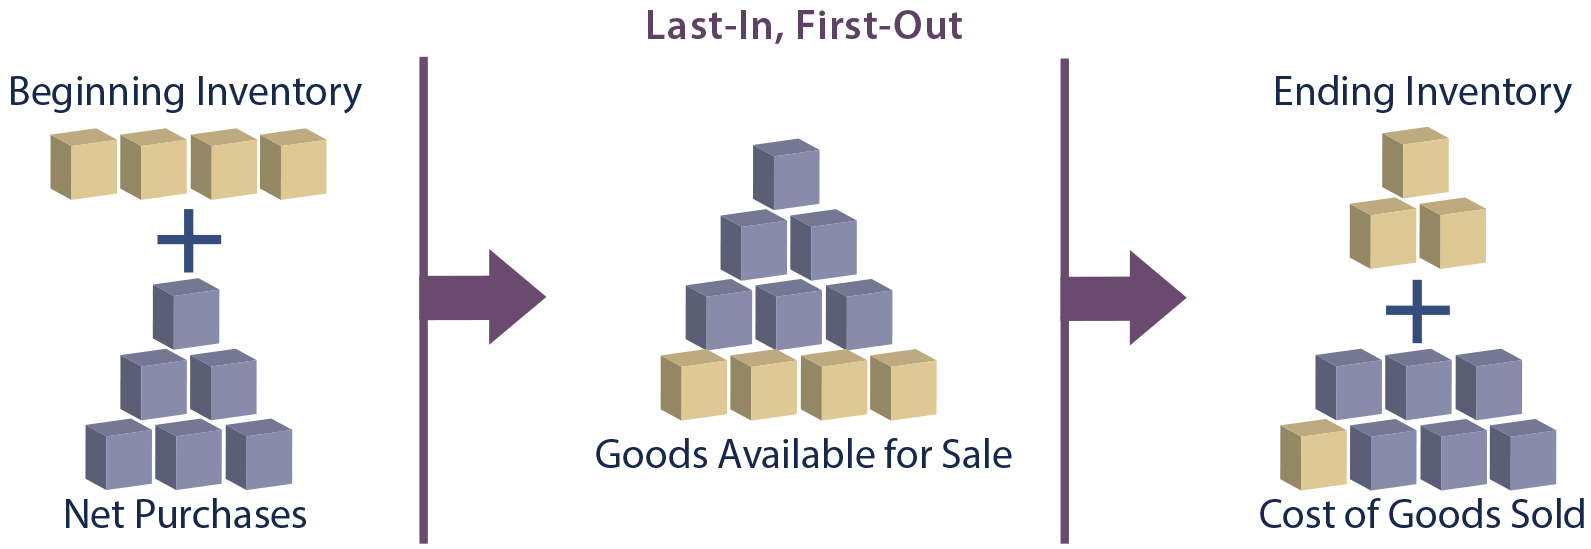 Impact of Beginning Inventory illustration